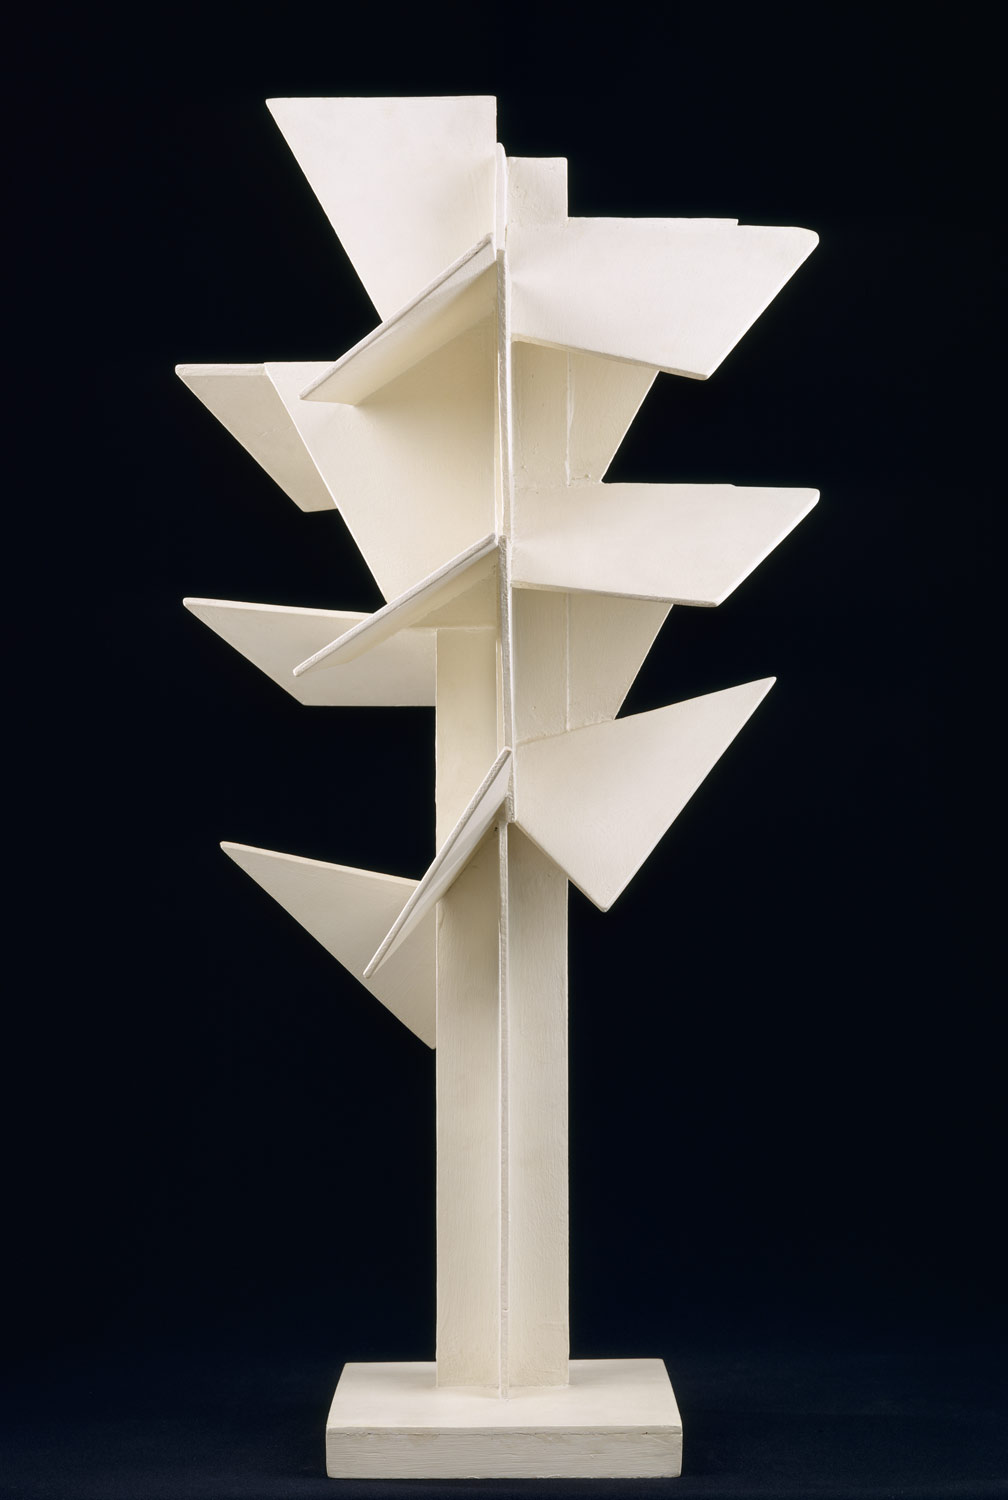 cubism keyword heilbrunn timeline of art history the maquette for arbre cubiste cubist tree